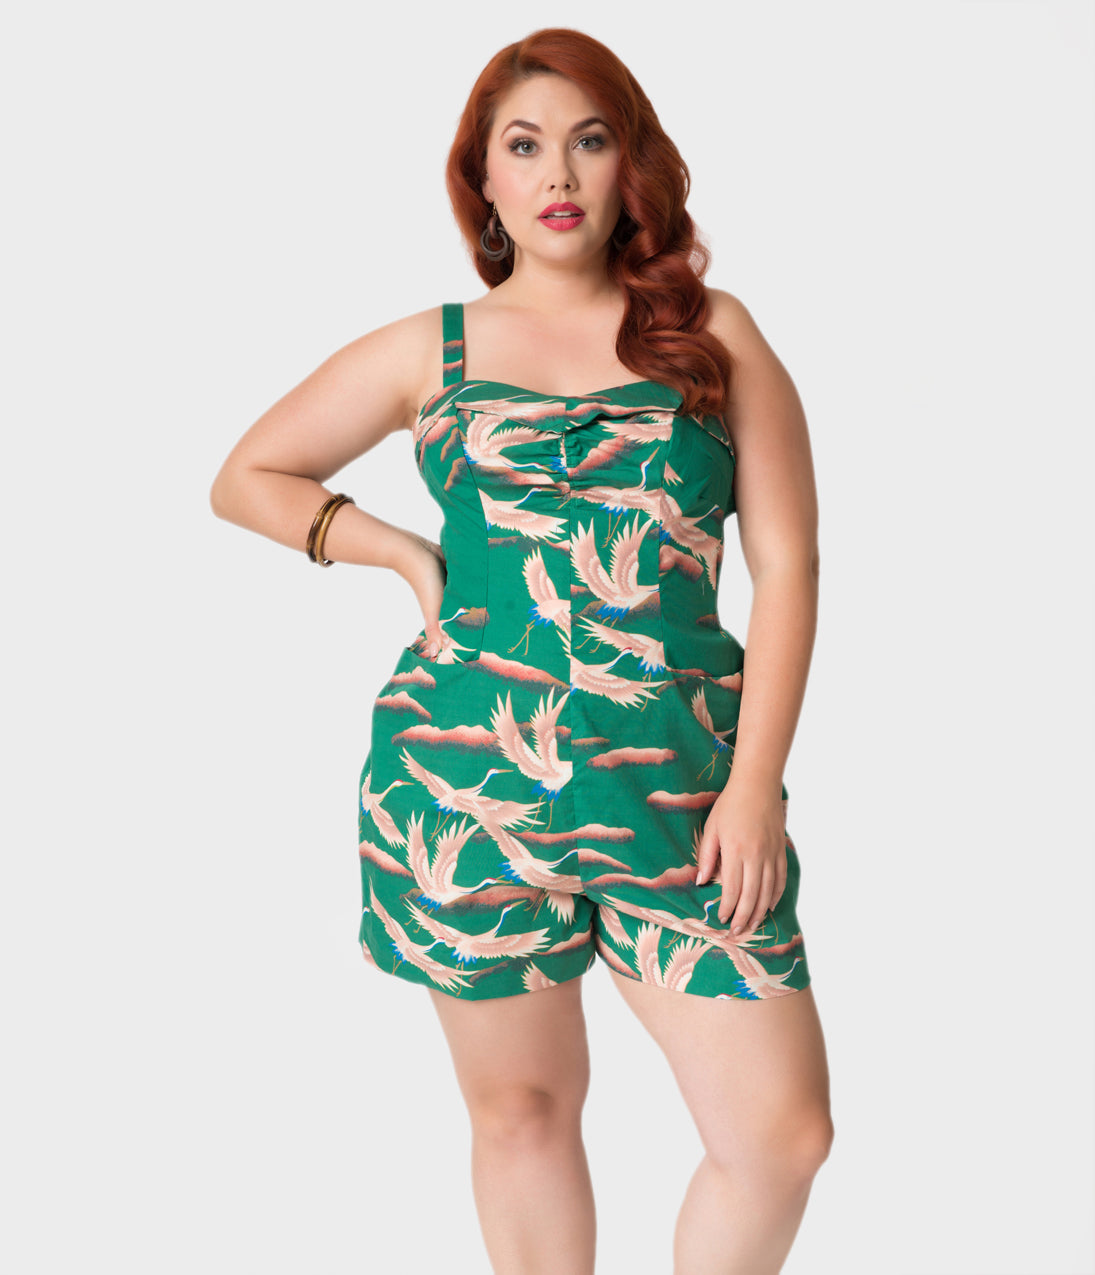 Vintage Rompers | Retro, Pin Up, Rockabilly Playsuits Alfred Shaheen Plus Size Green Cranes Print Hawaiian Romper $117.00 AT vintagedancer.com